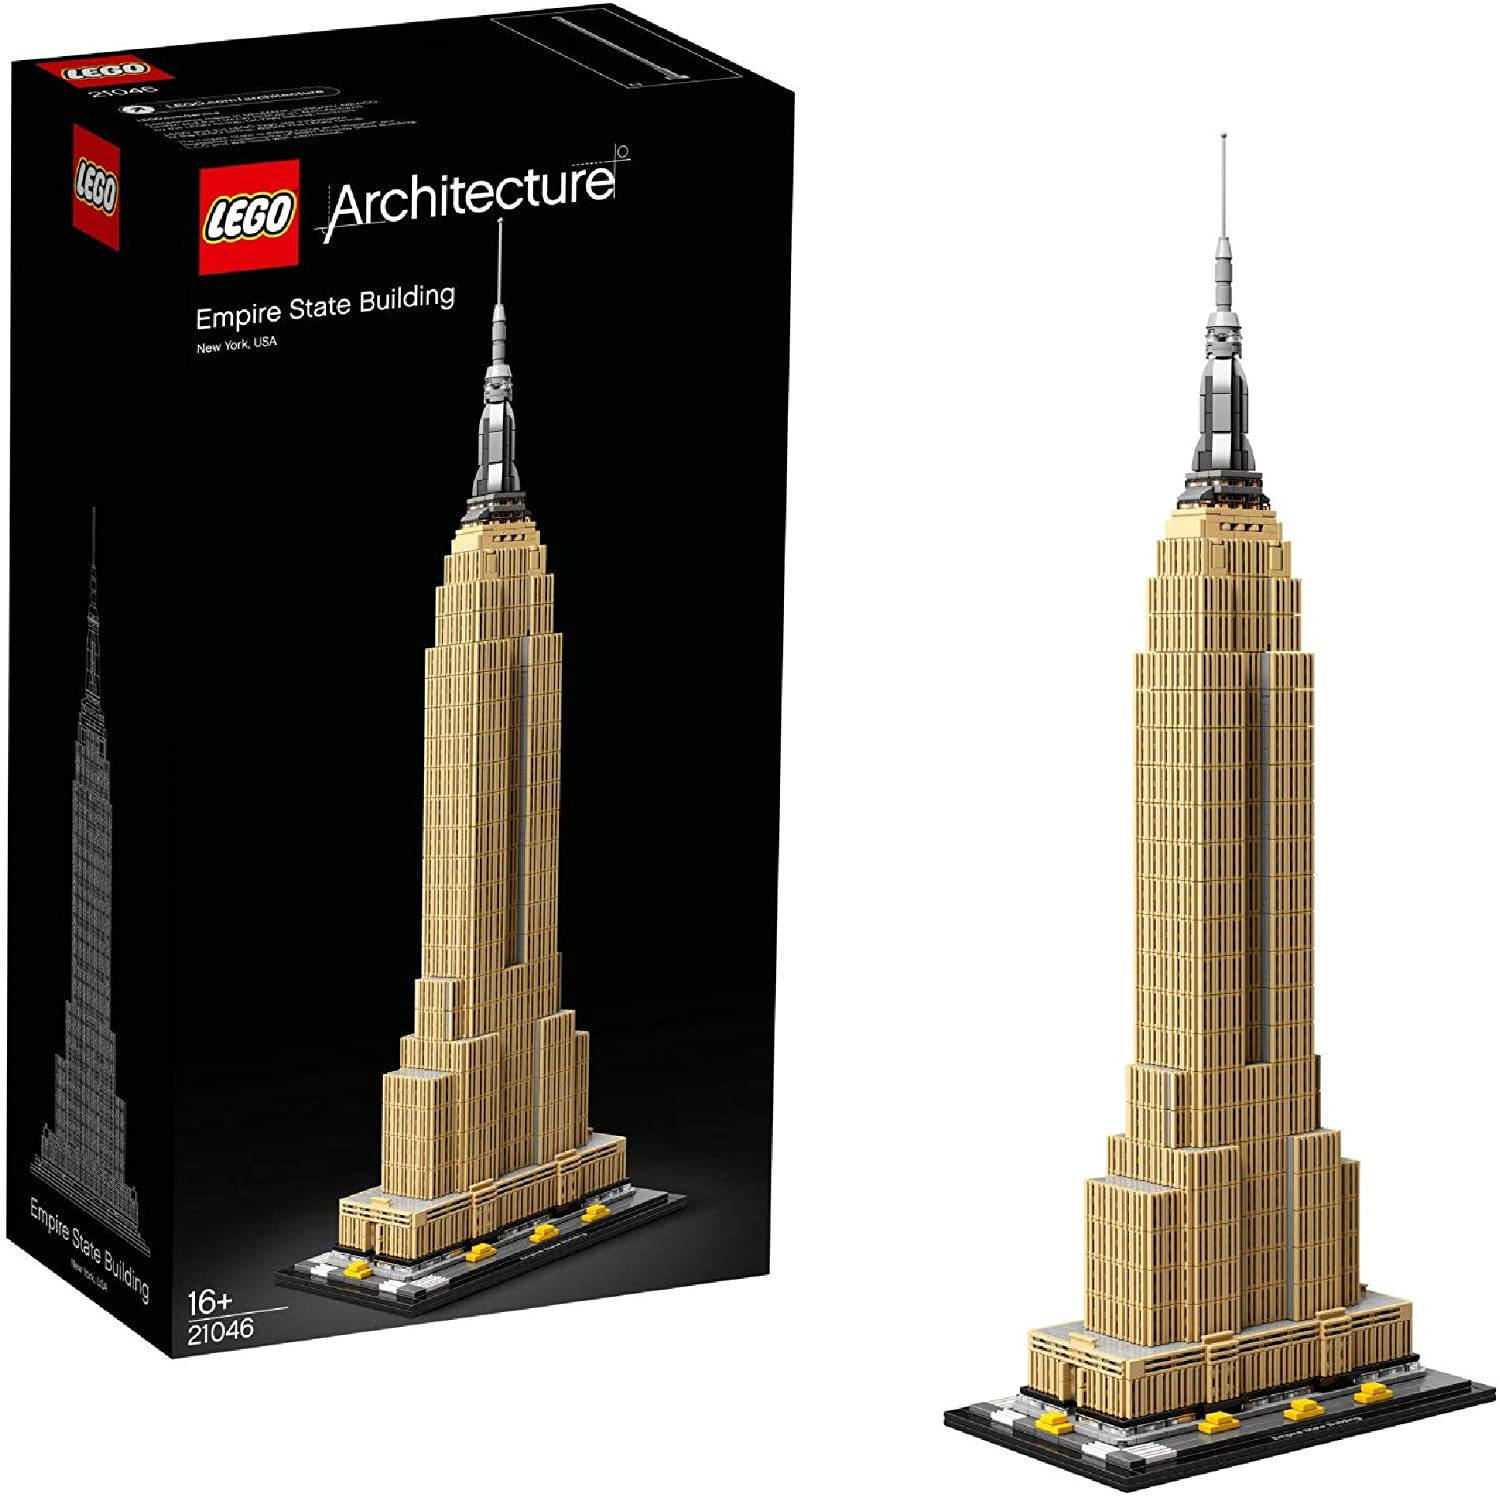 Lego 21046 Architecture Empire State Building New York Landmark Collectible Model Building Set Amazon Co Uk Toys Games